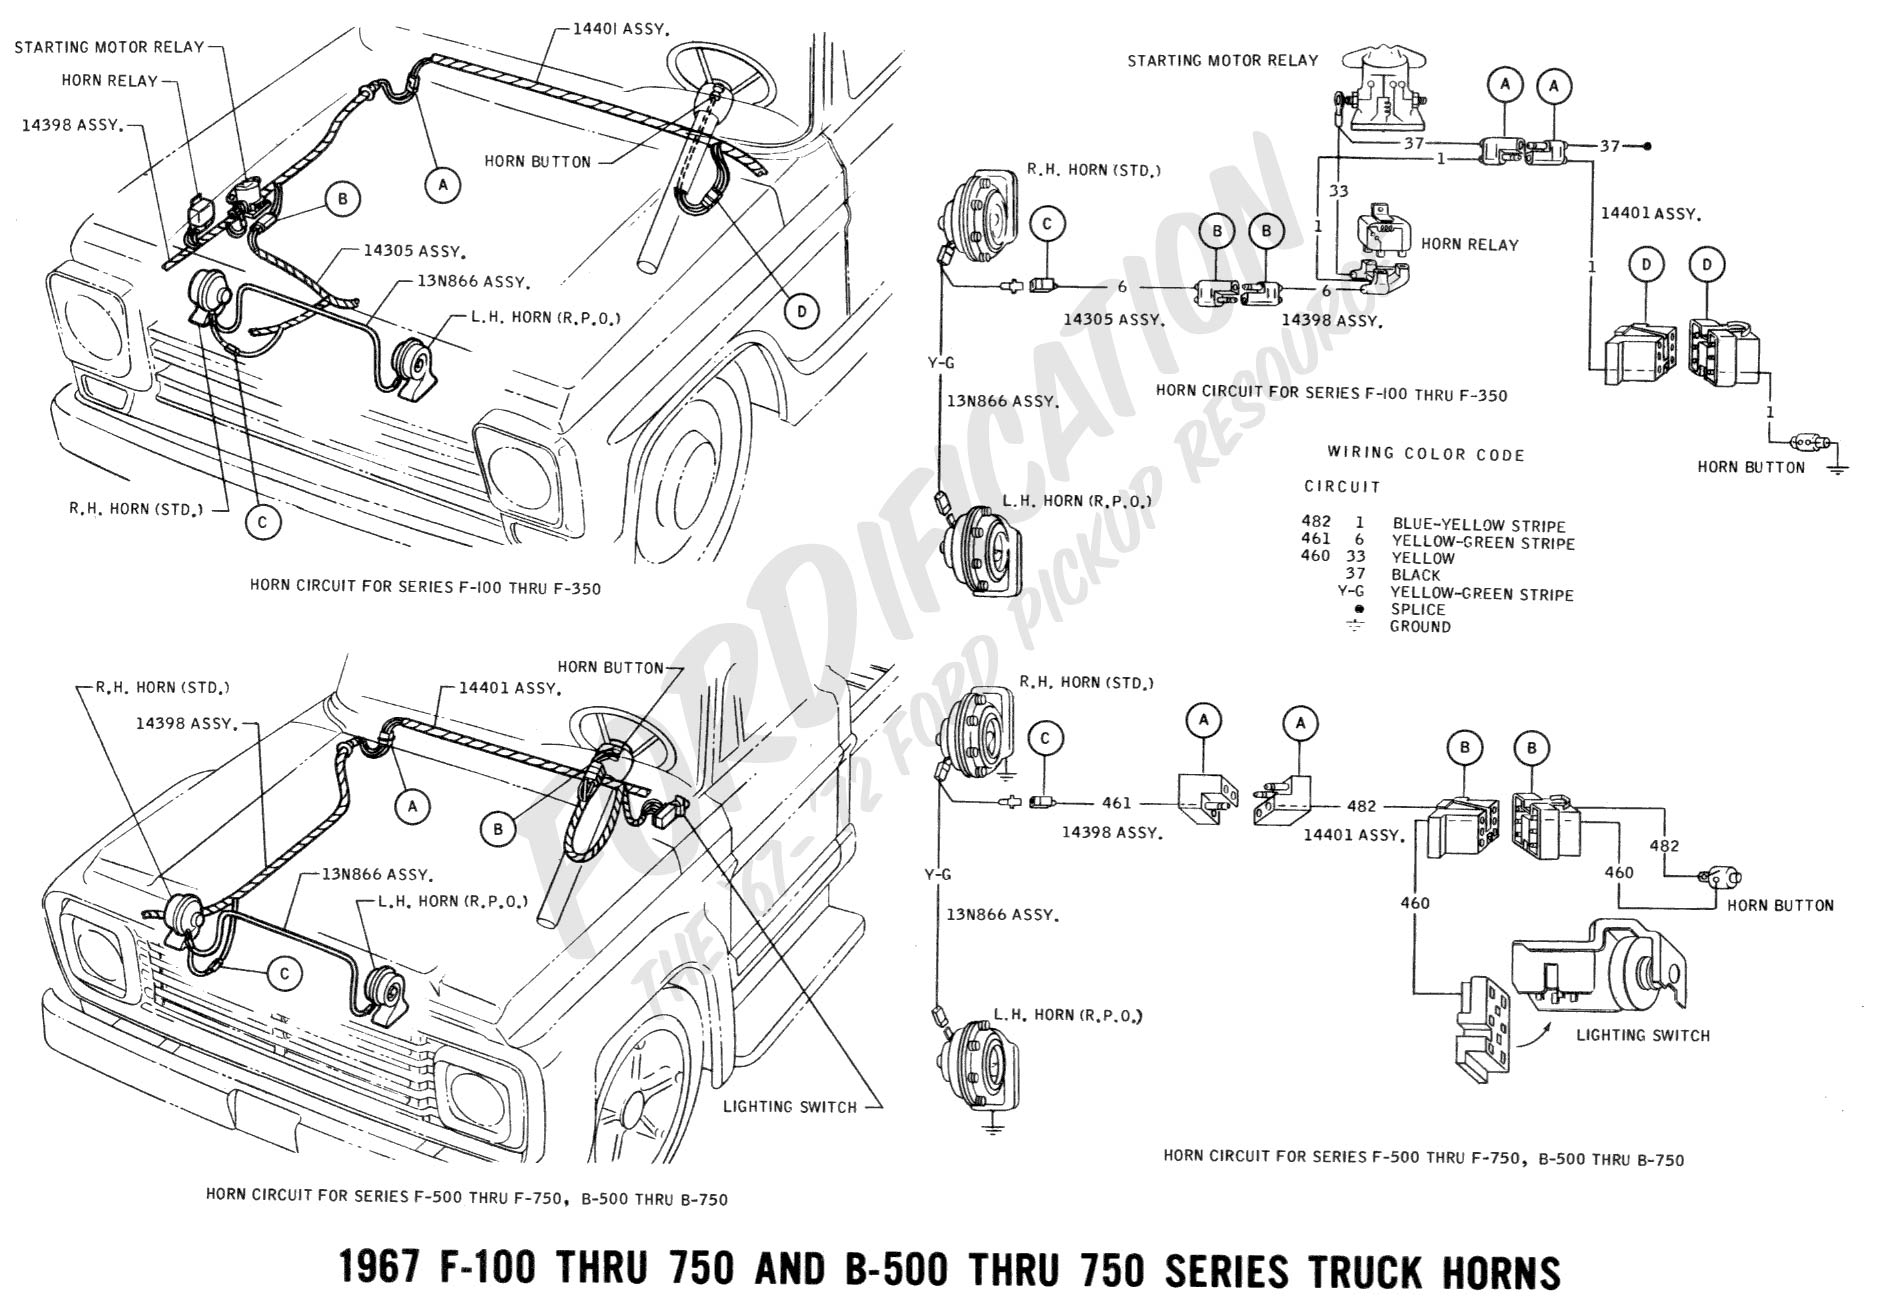 2000 Gmc Truck Heater Diagram also P 0900c1528008200e moreover 4i0a1 Chevrolet S10 4x2 1995 Chevy S10 Pickup 4cyl Cannot furthermore Schematics h likewise 24527. on chevrolet truck 1982 wiring